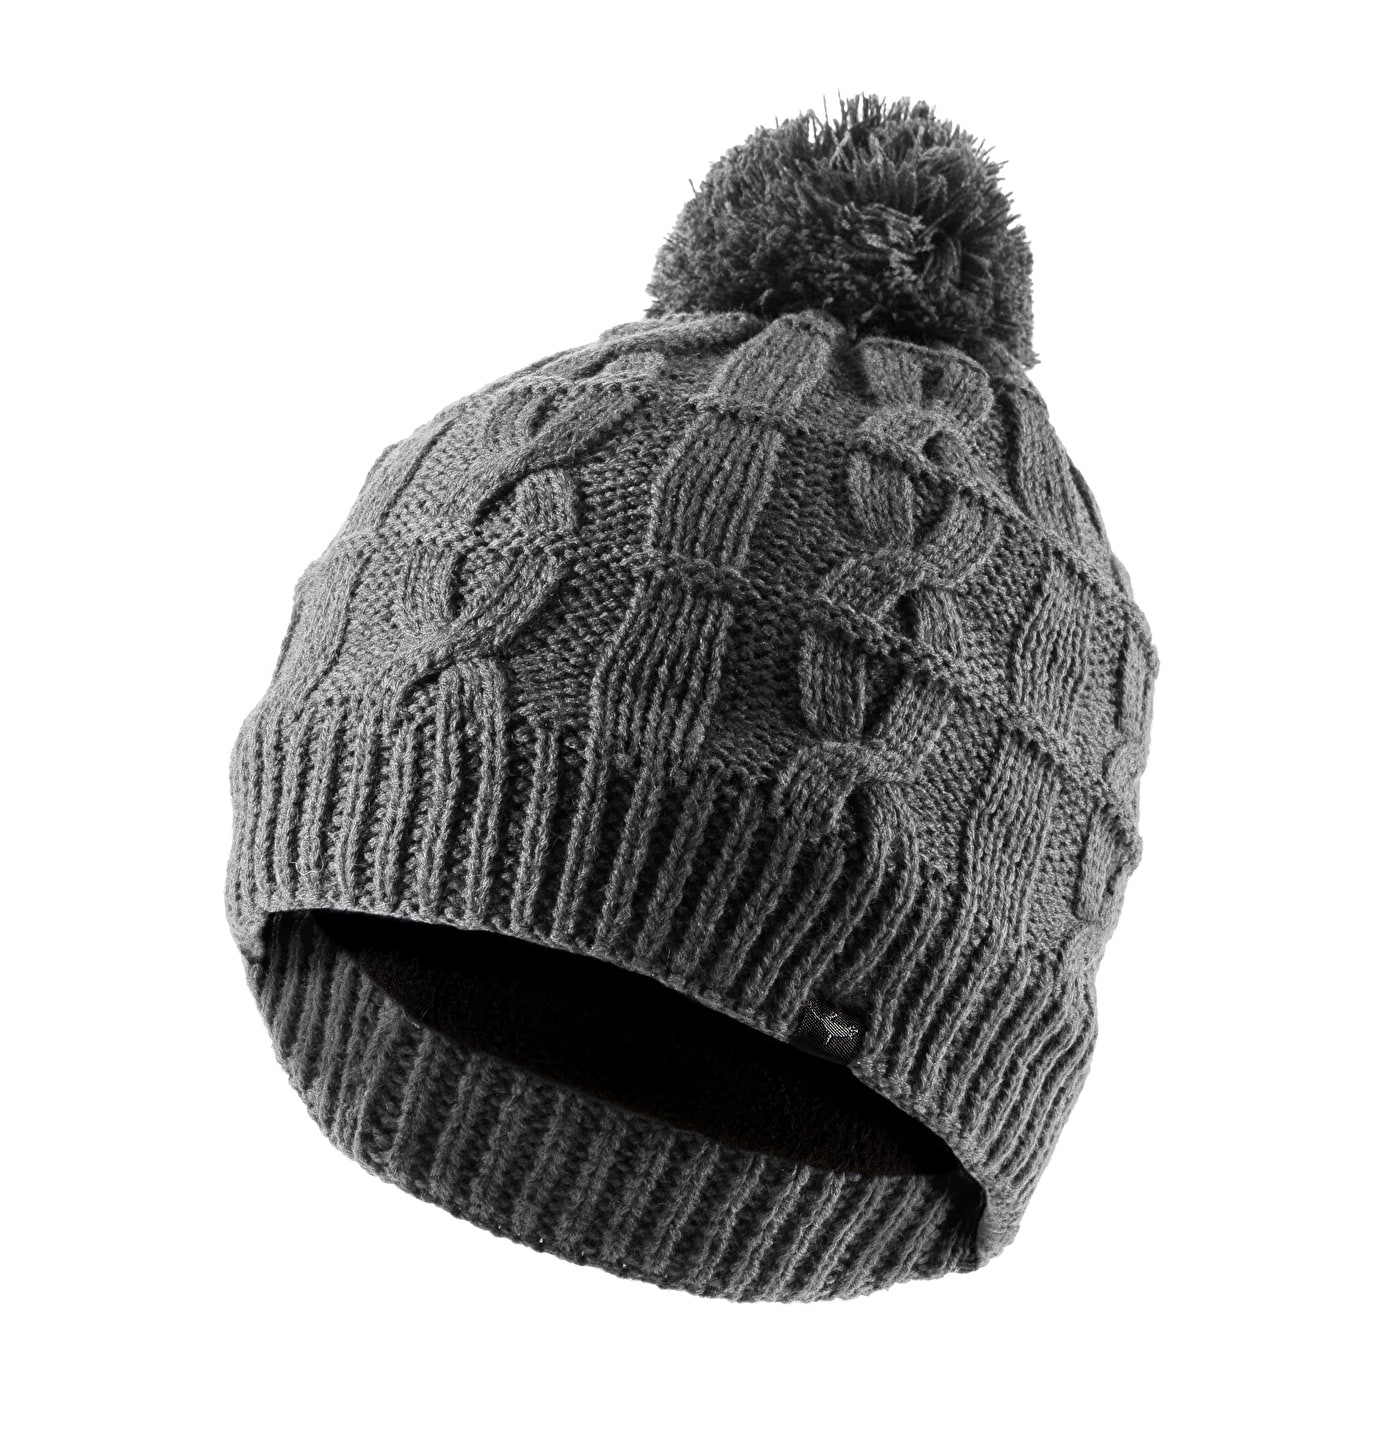 Best Of Waterproof Cable Knit Bobble Hat Cable Hat Of Superb 40 Pictures Cable Hat